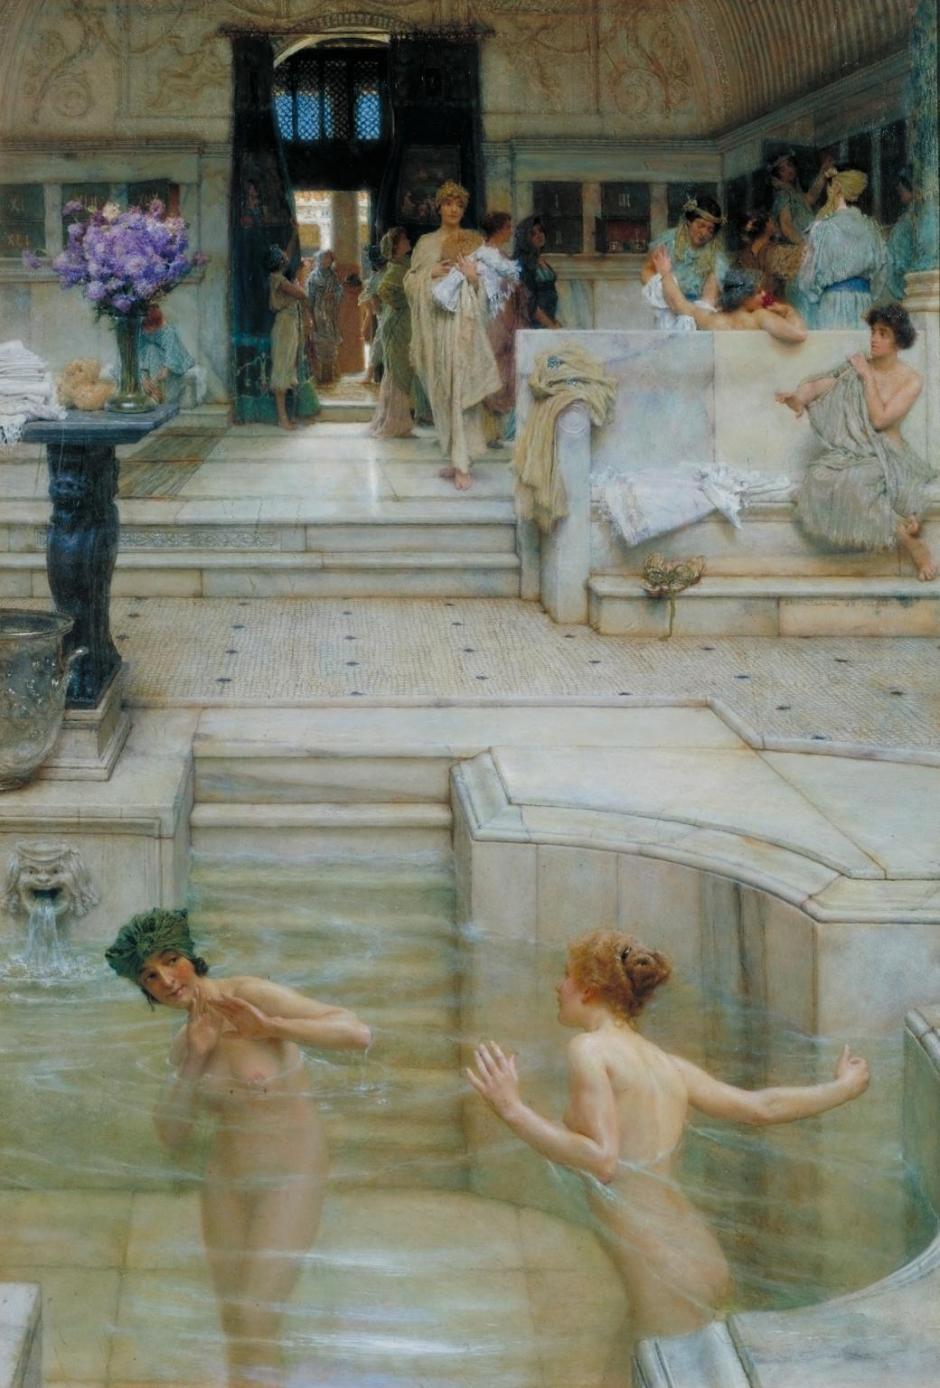 A Favourite Custom 1909 by Sir Lawrence Alma-Tadema 1836-1912